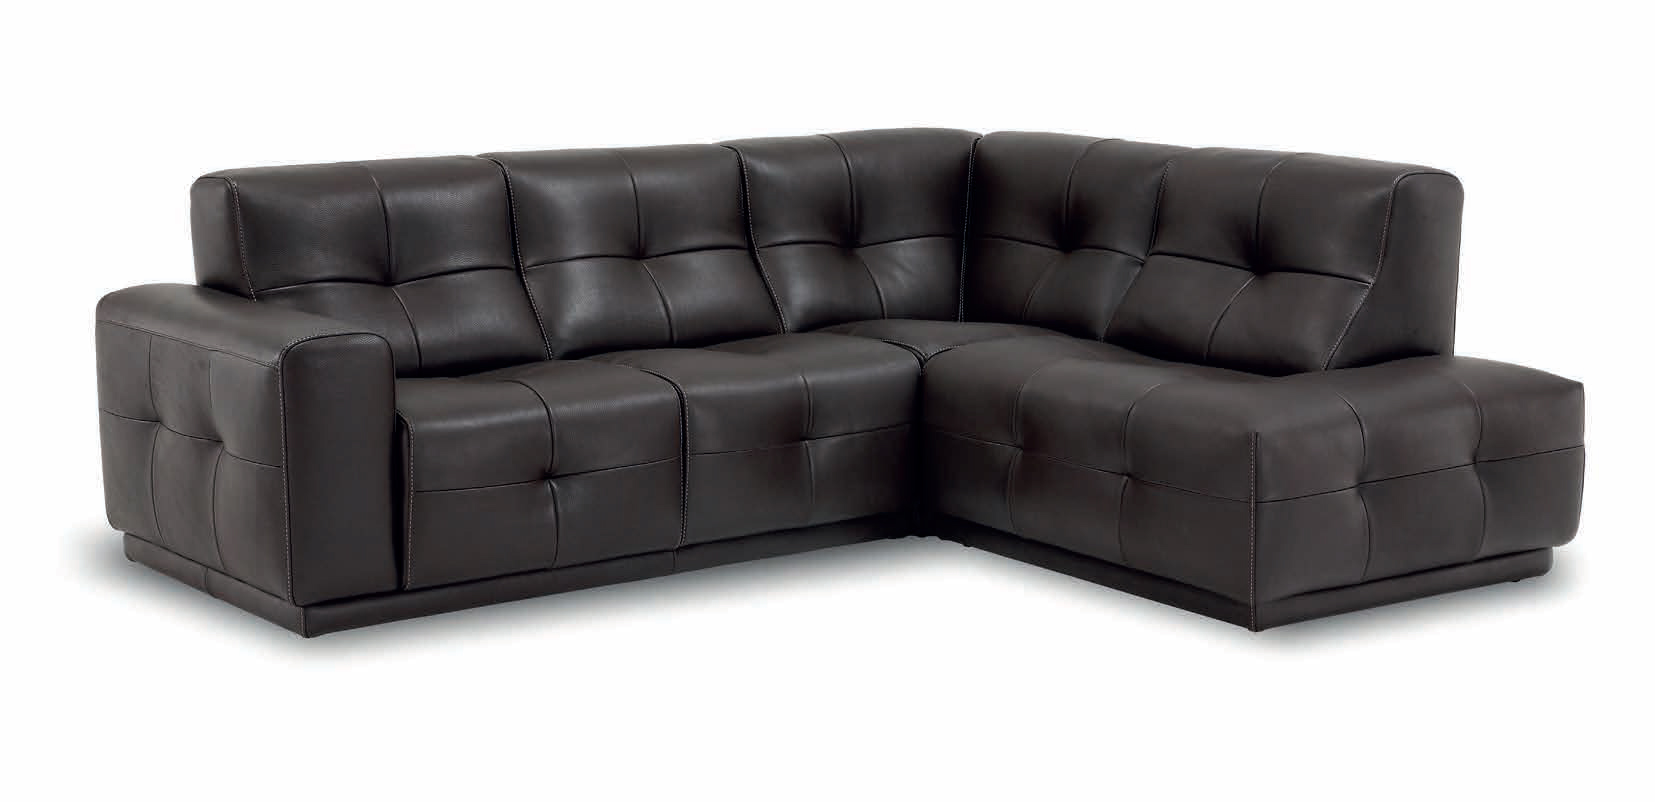 Incanto Leather Sofa C Furniture Modern Contemporary Thesofa